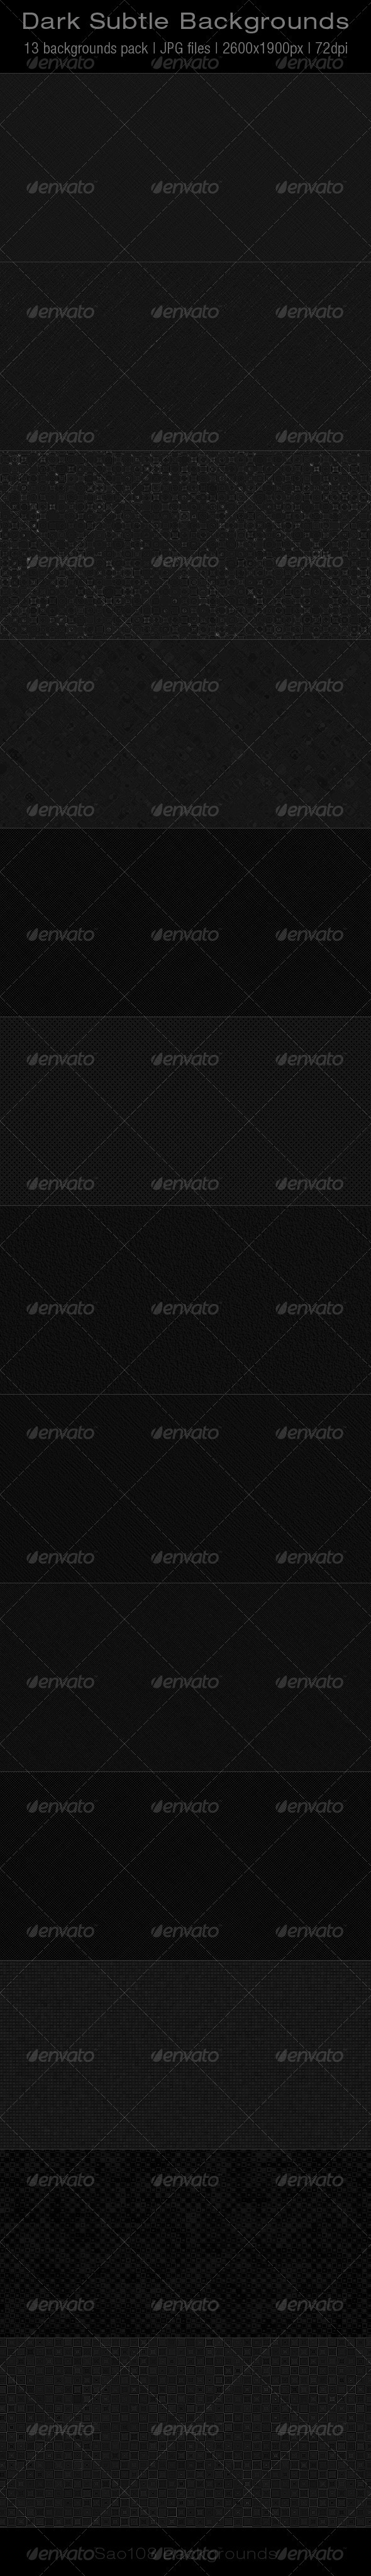 Dark subtle backgrounds - Patterns Backgrounds